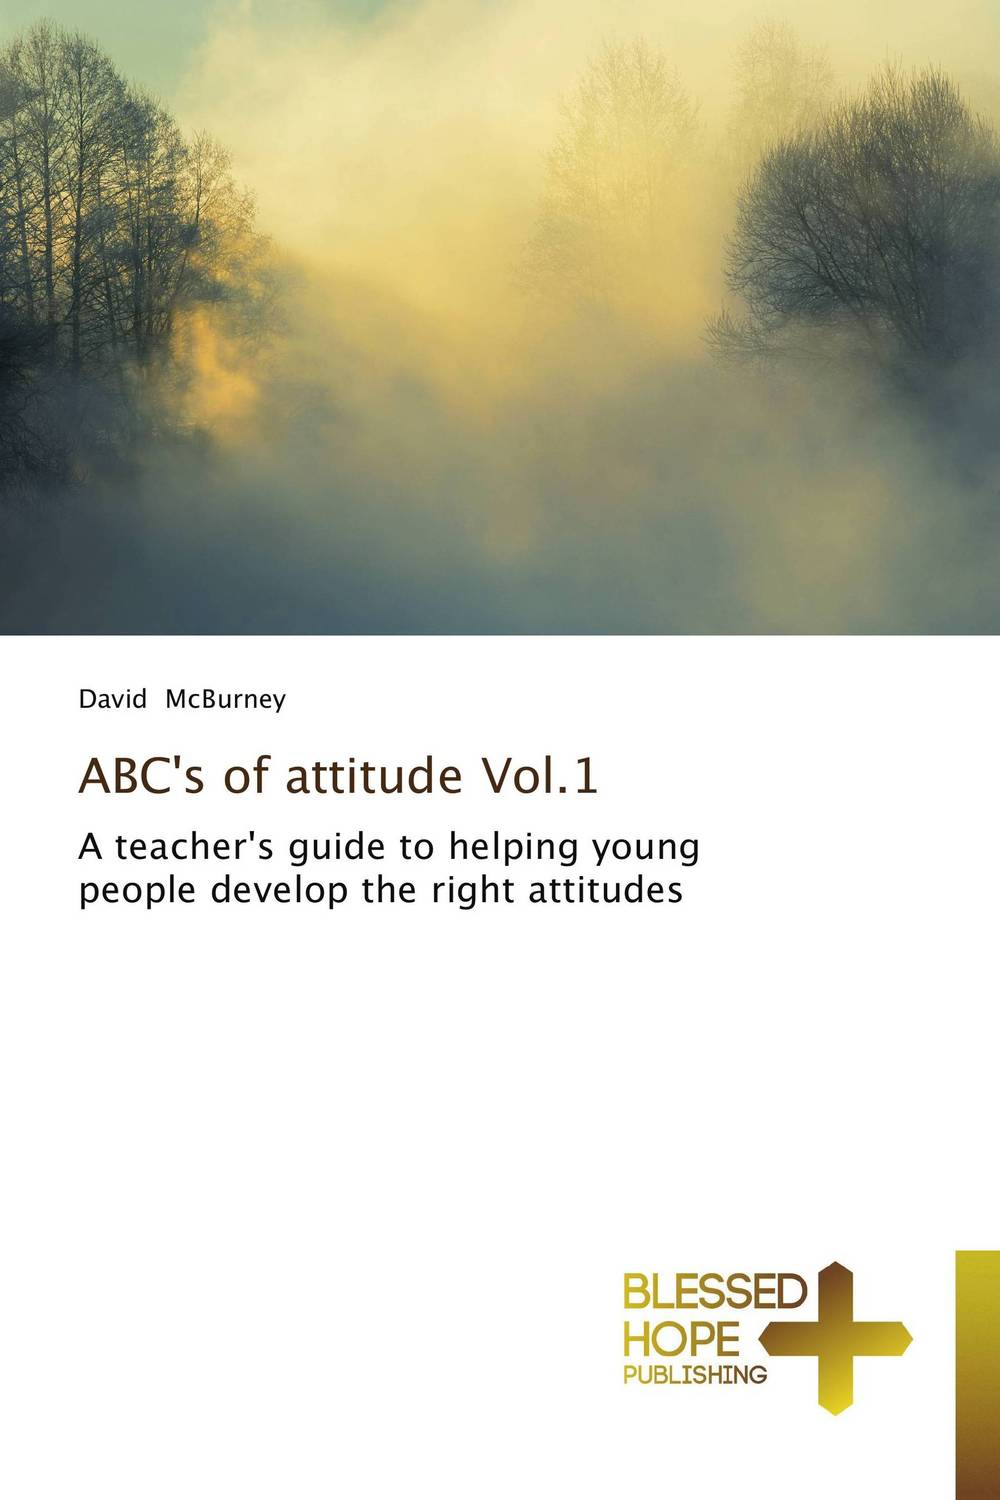 ABC's of attitude Vol.1 mastering the challenges of leading change inspire the people and succeed where others fail